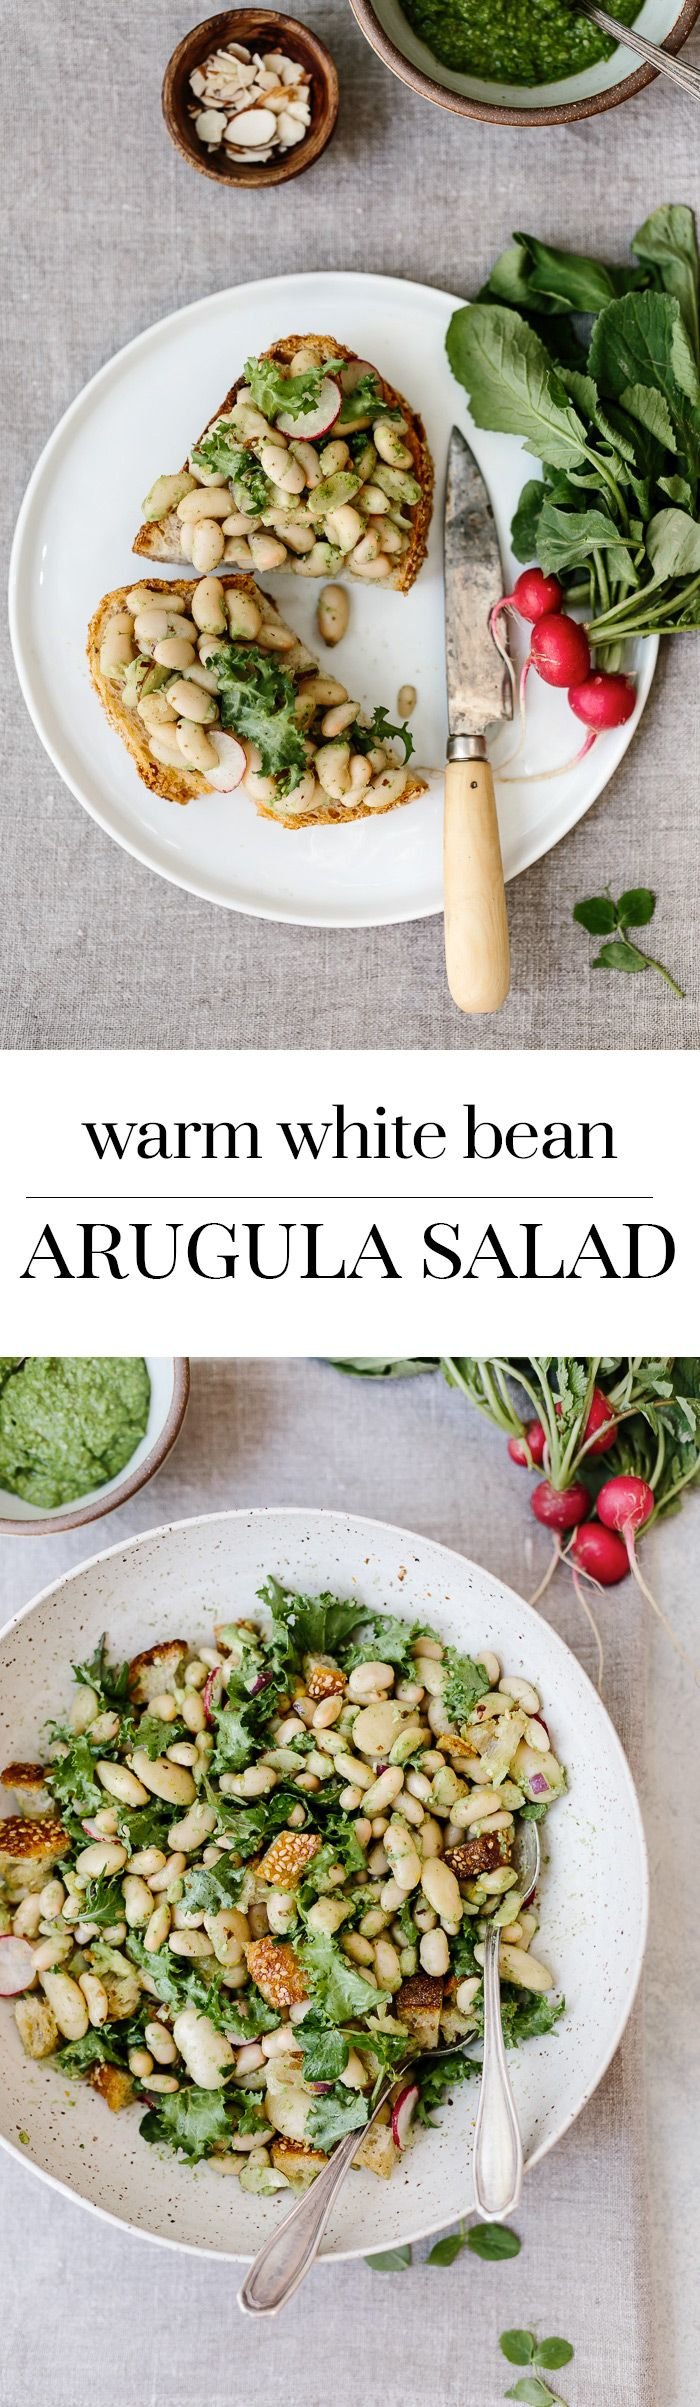 100+ Arugula Salad Recipes on Pinterest | Simple green ...